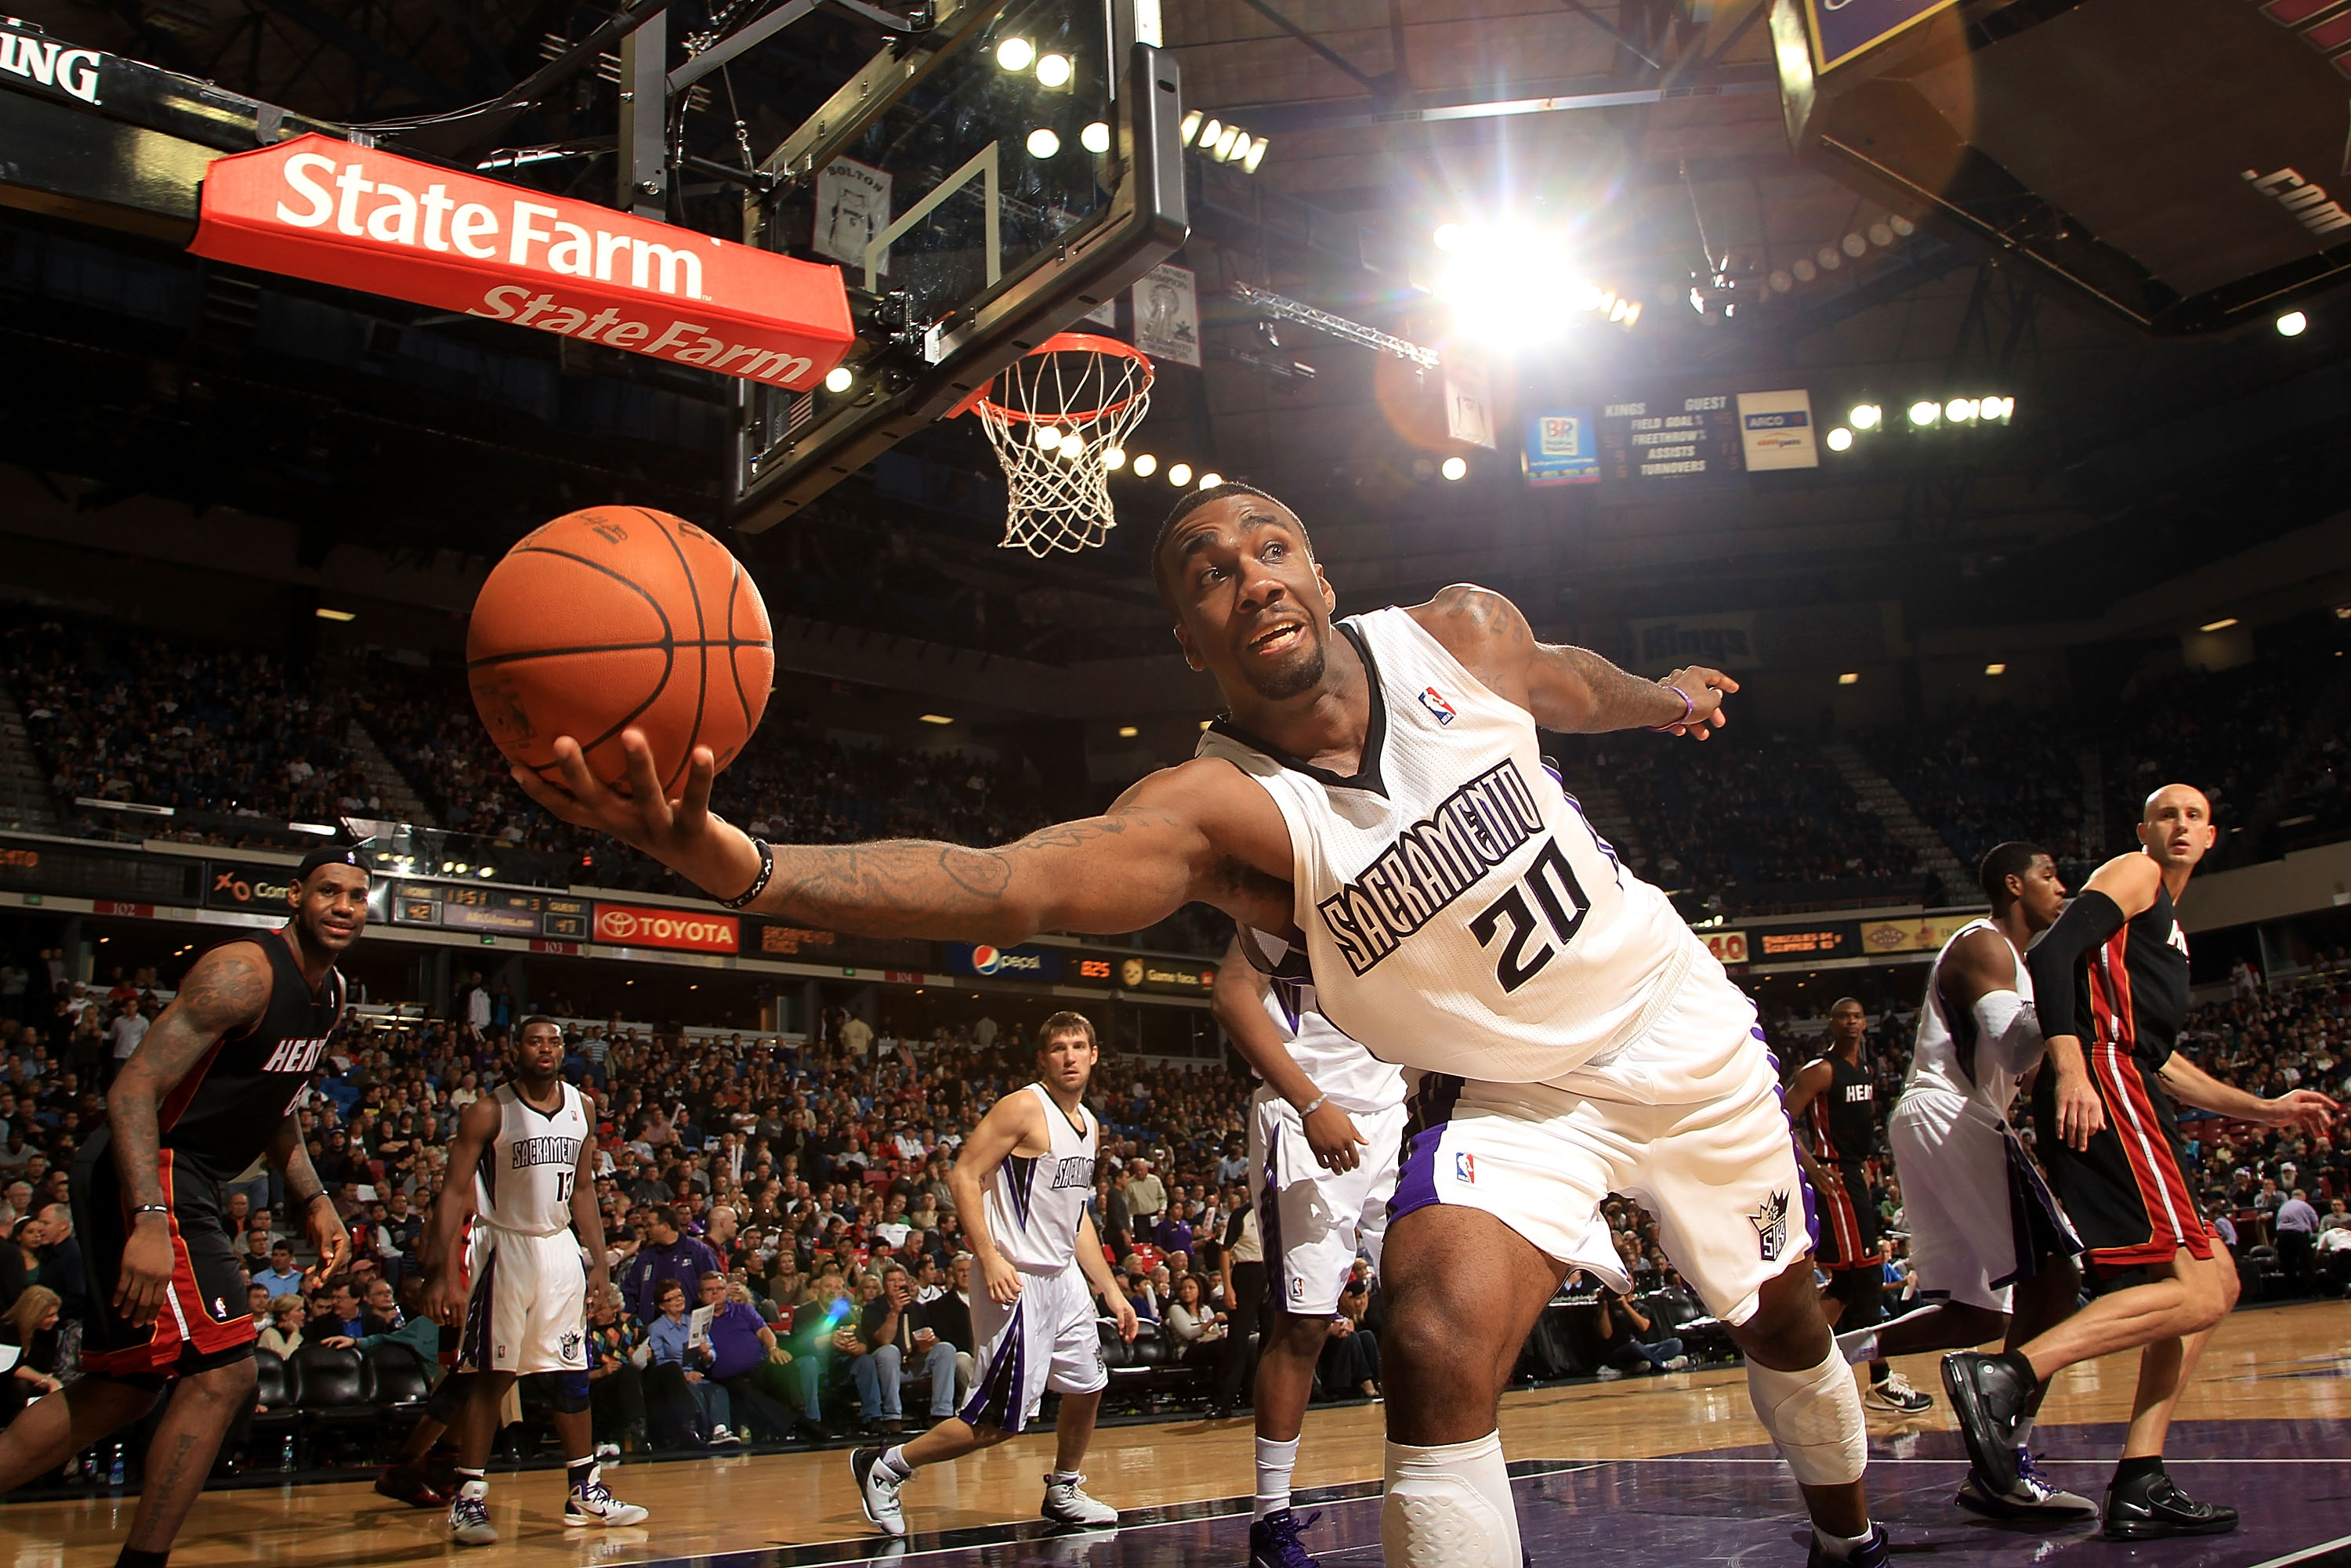 SACRAMENTO, CA - DECEMBER 11:  Donte Greene #20 the Sacramento Kings saves the ball from going out of bounds during their game against the Miami Heat at ARCO Arena on December 11, 2010 in Sacramento, California.  NOTE TO USER: User expressly acknowledges